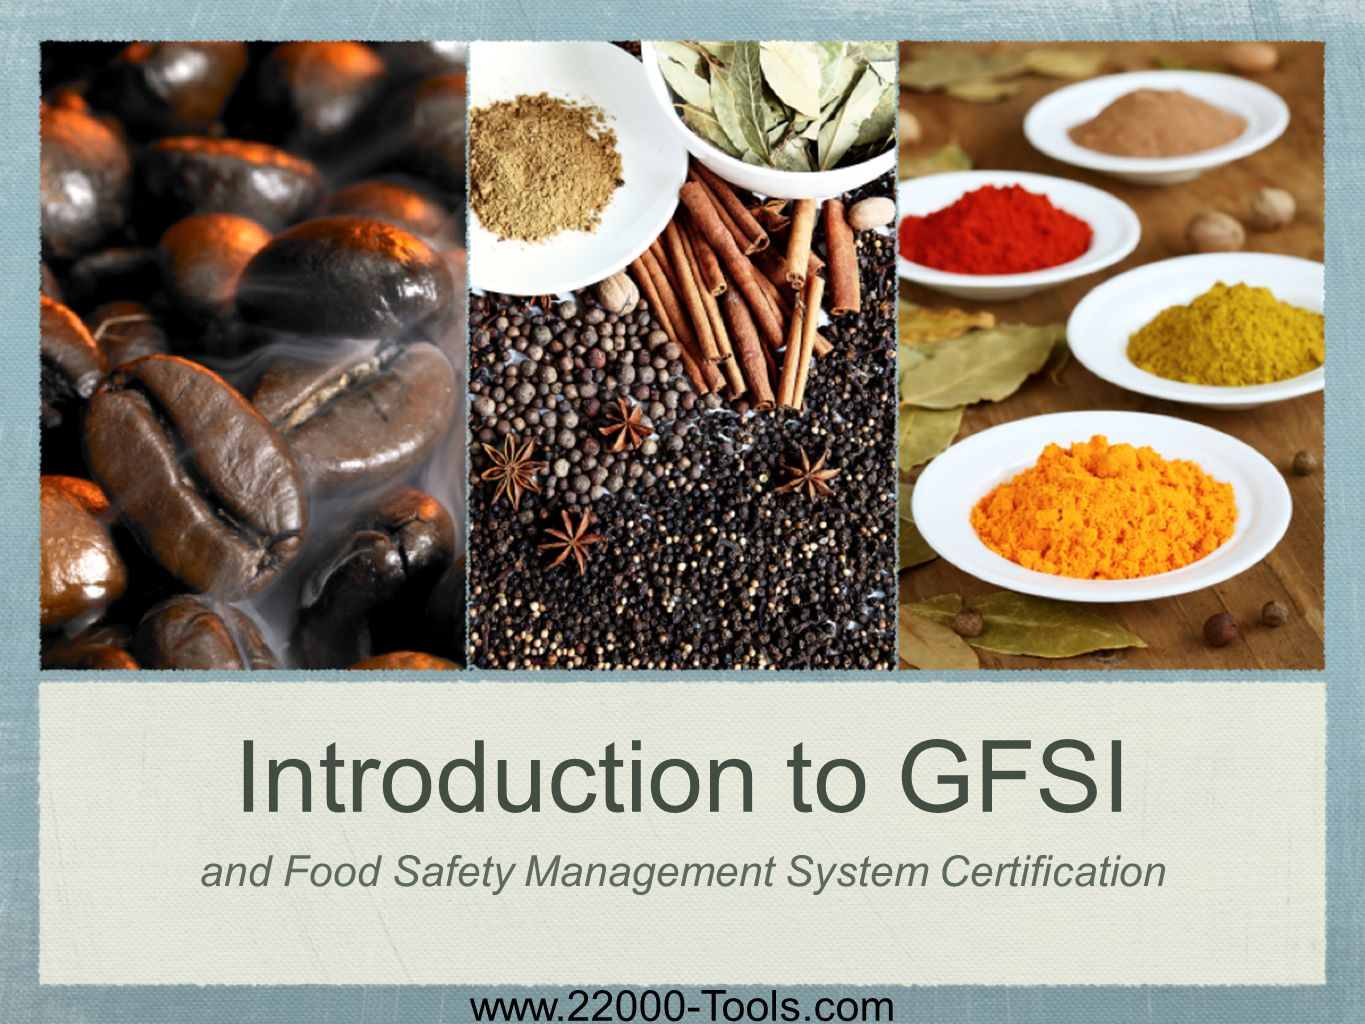 www.22000-Tools.com Introduction to GFSI and Food Safety Management System Certification